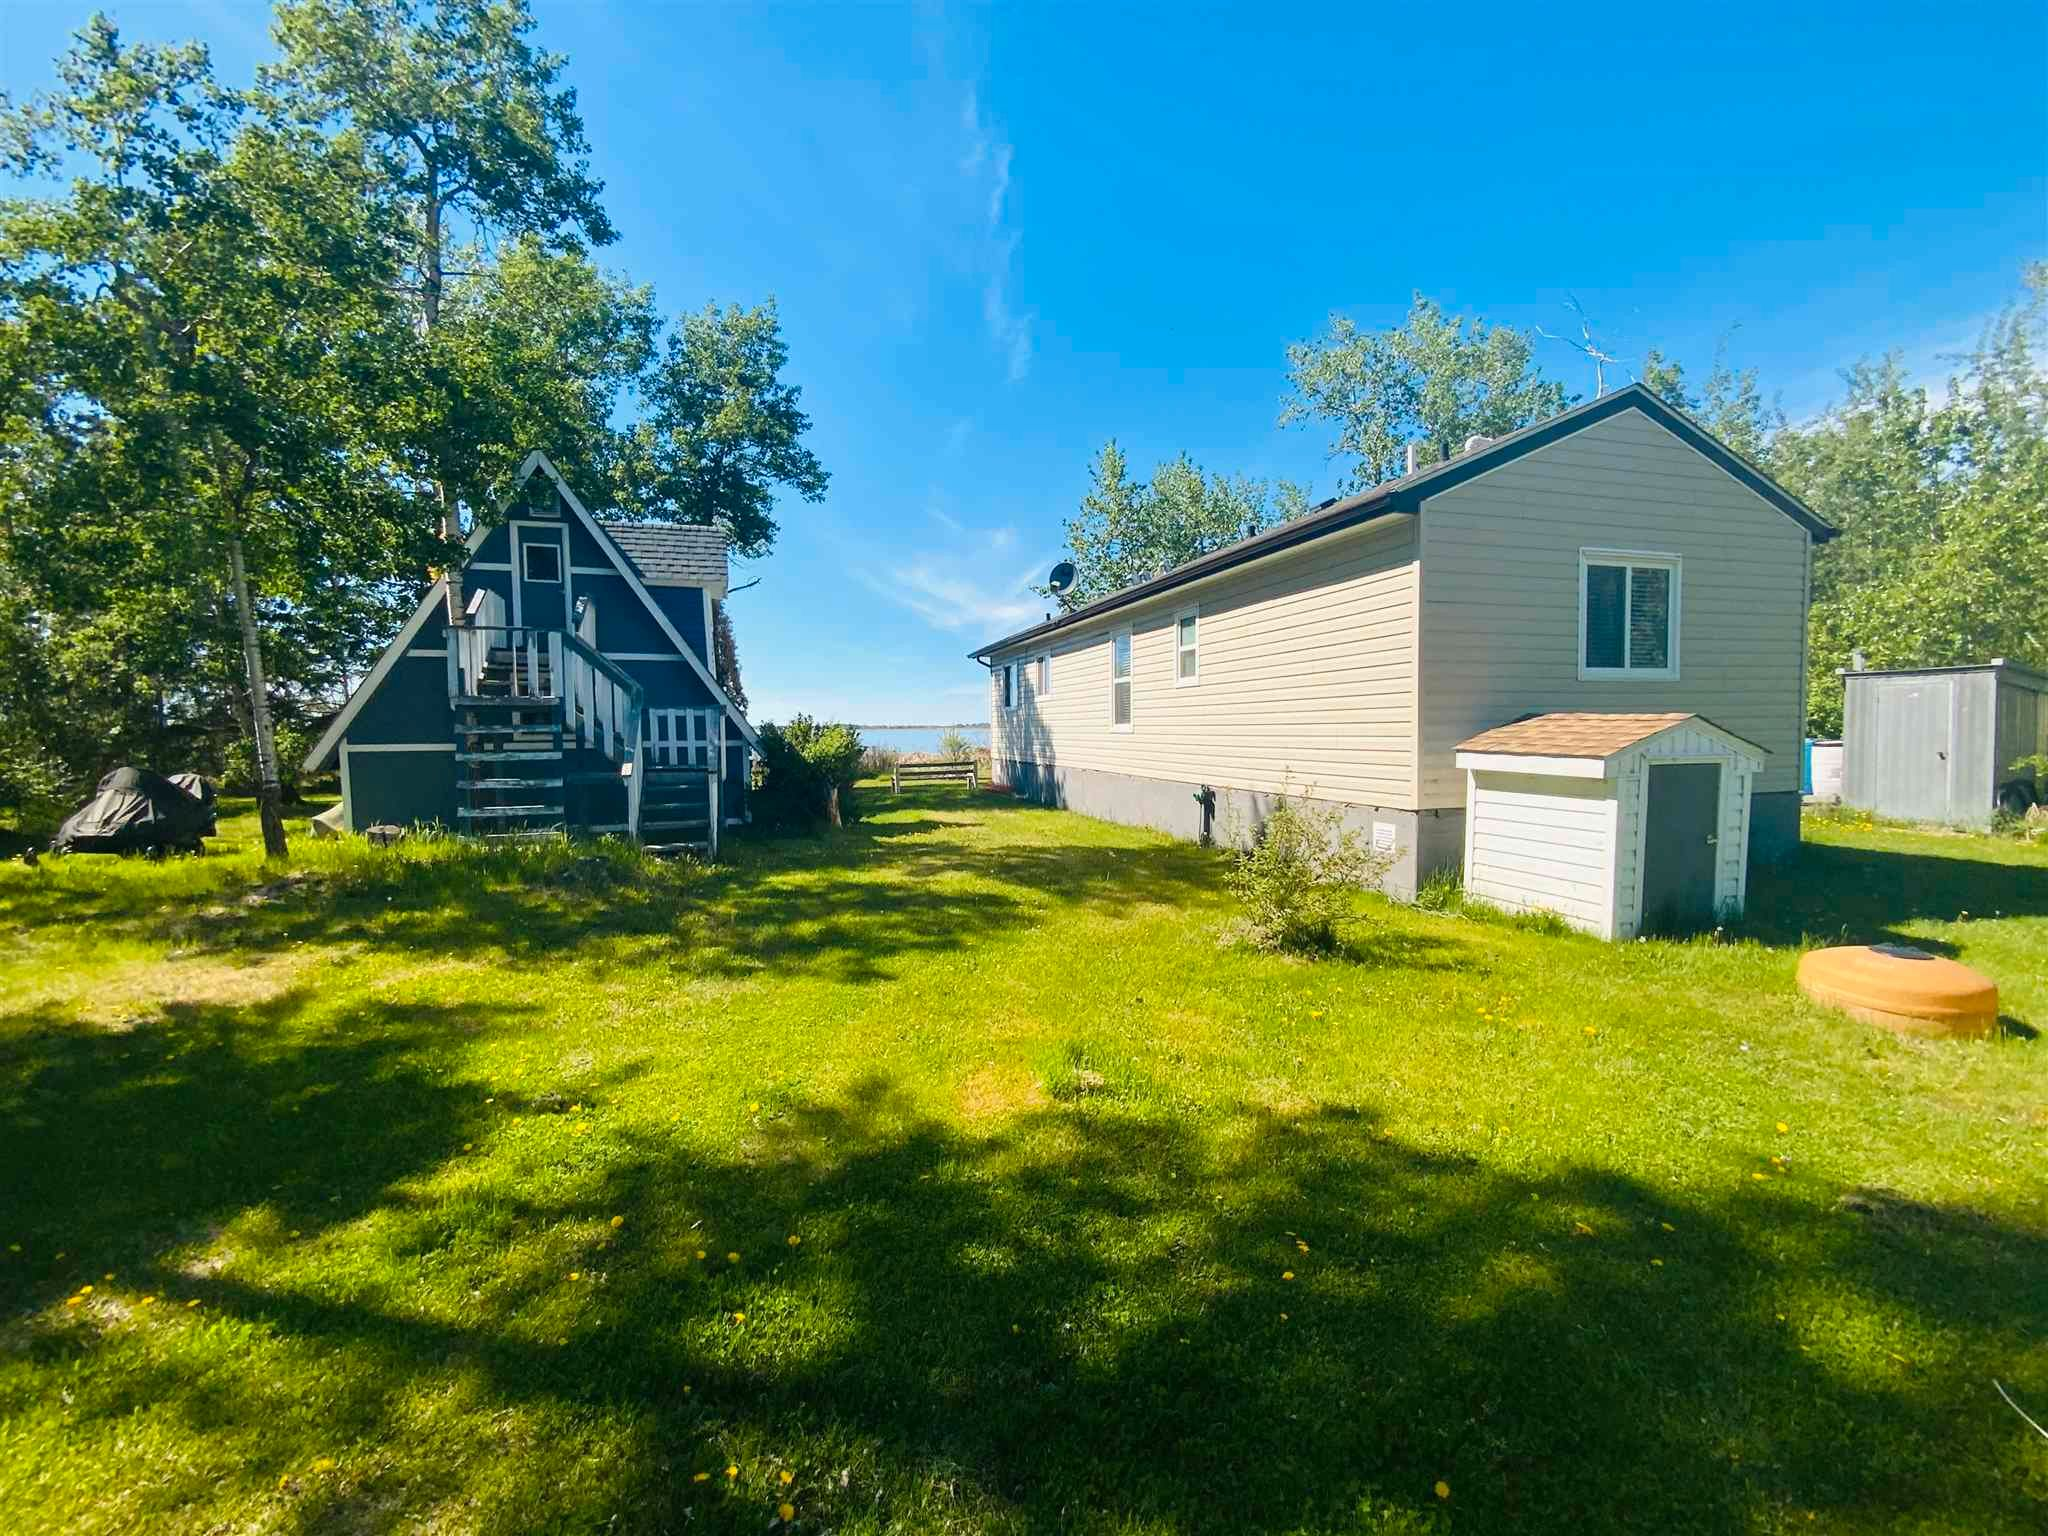 Main Photo: 324-254054 Twp Rd 460: Rural Wetaskiwin County Manufactured Home for sale : MLS®# E4247331